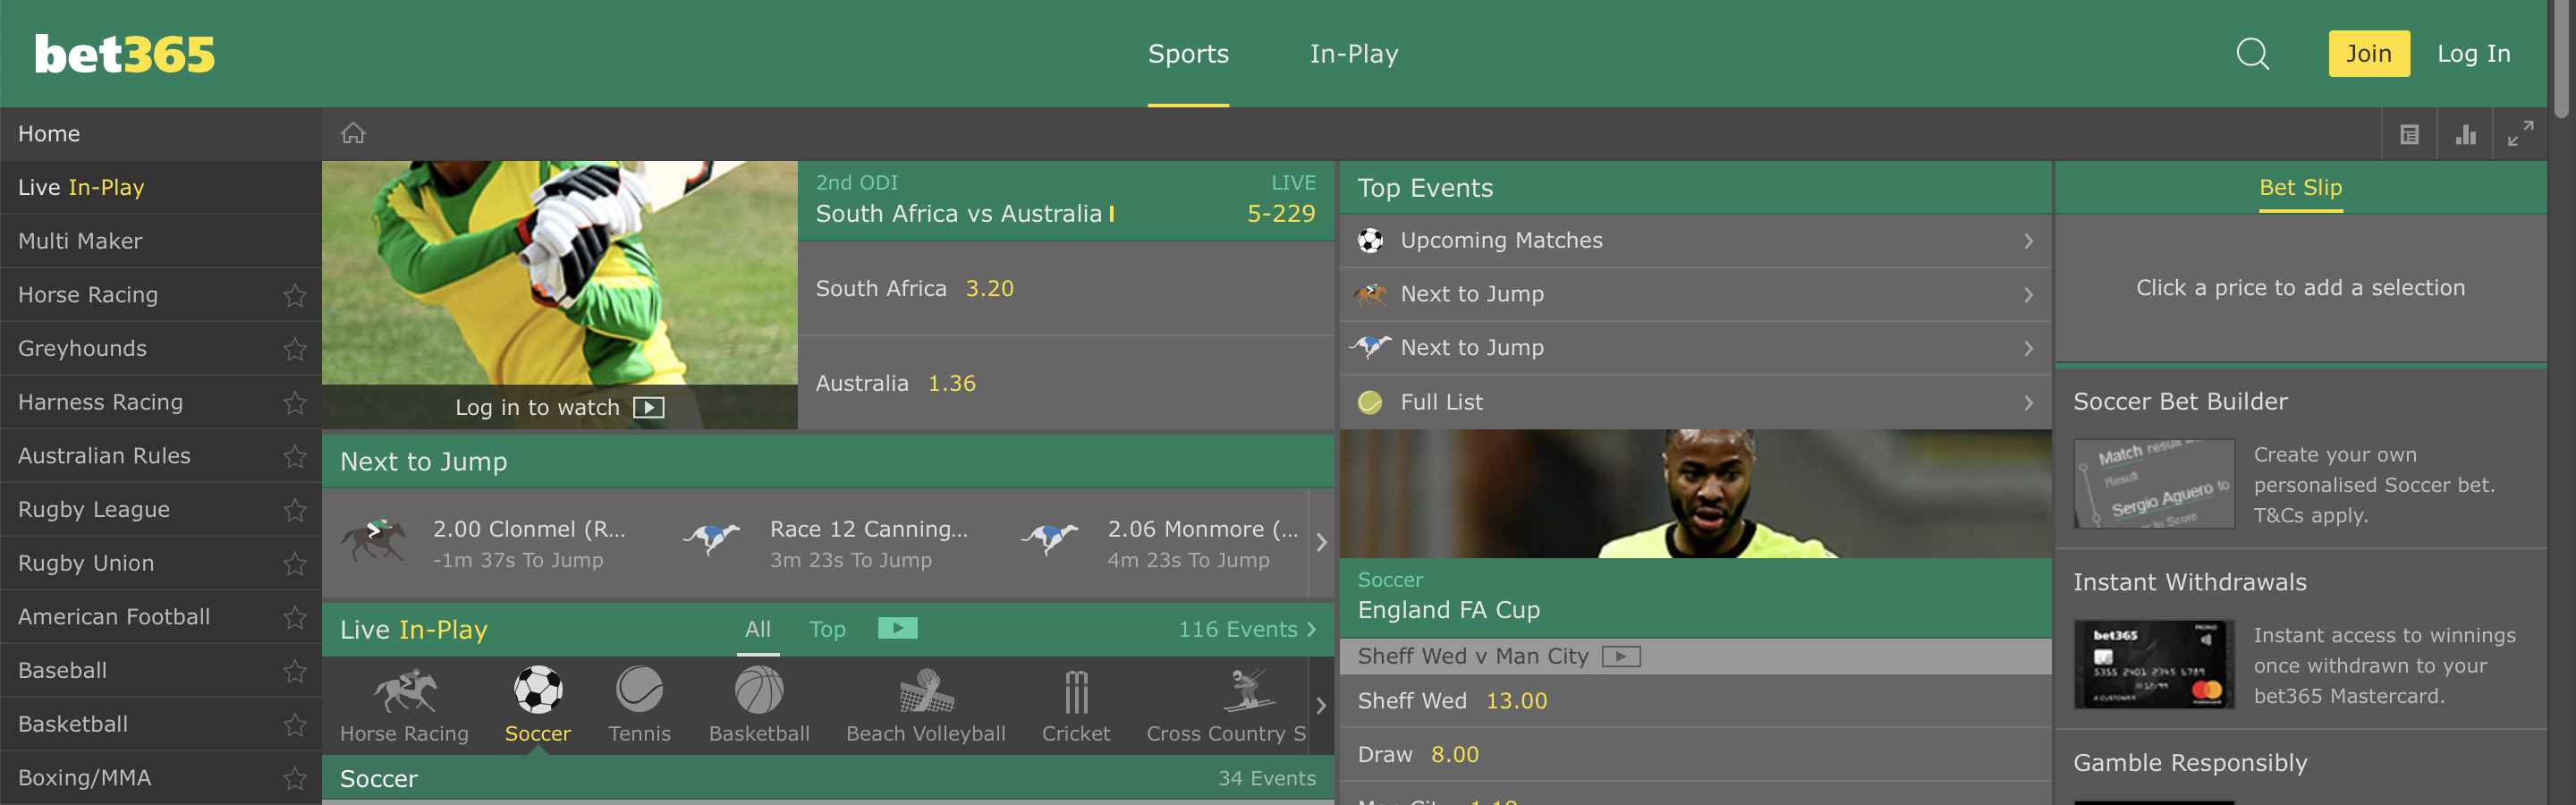 Bet365 Homepage Interface